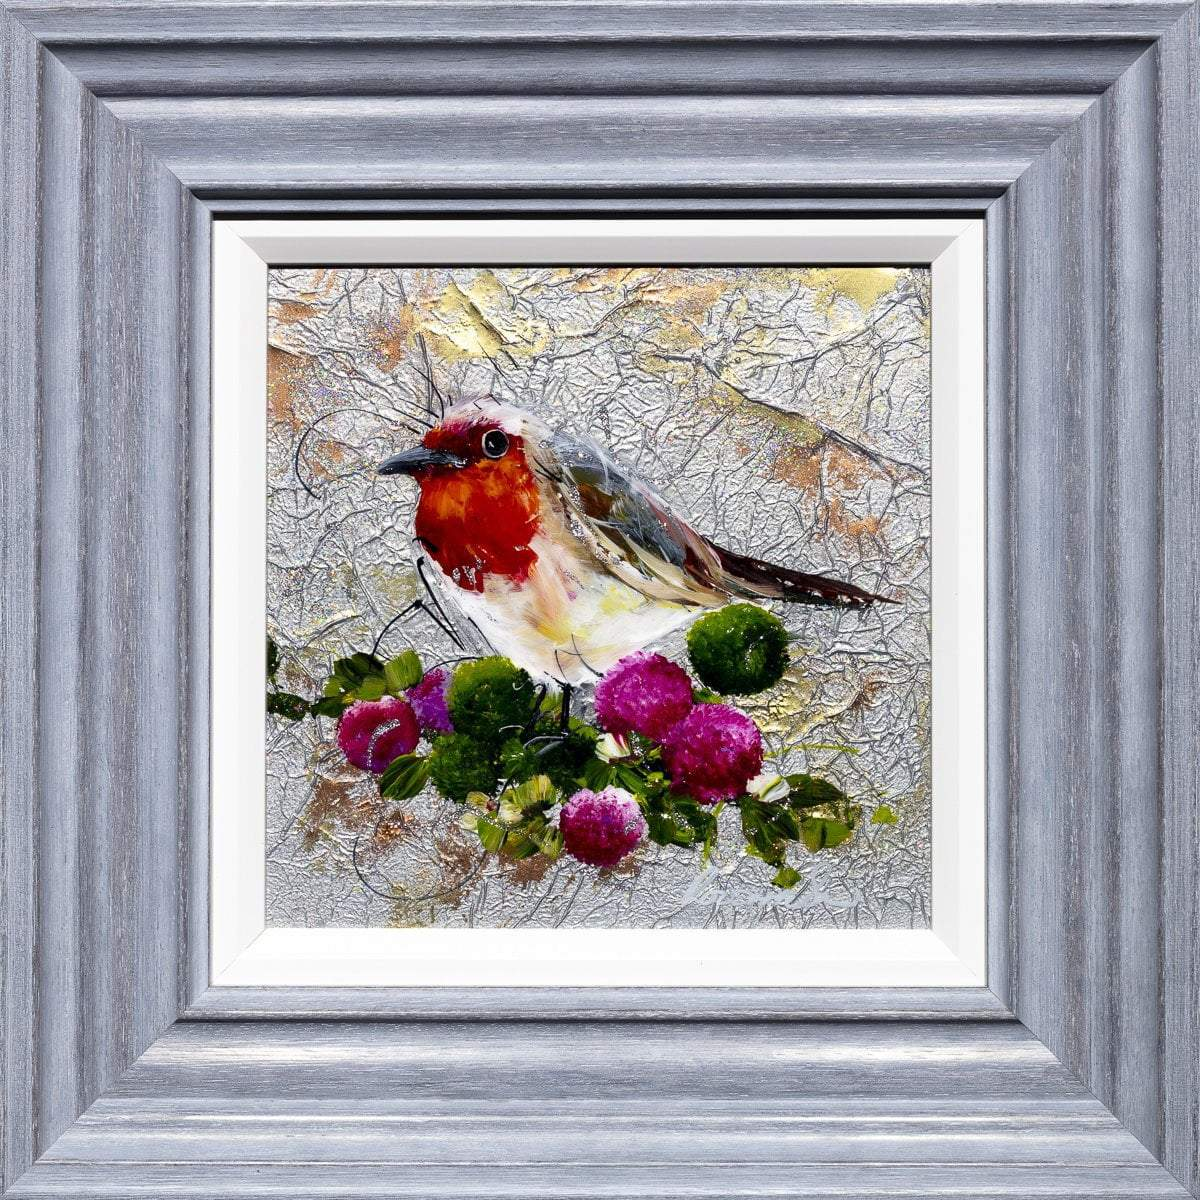 Say Hello - Original Rozanne Bell Framed